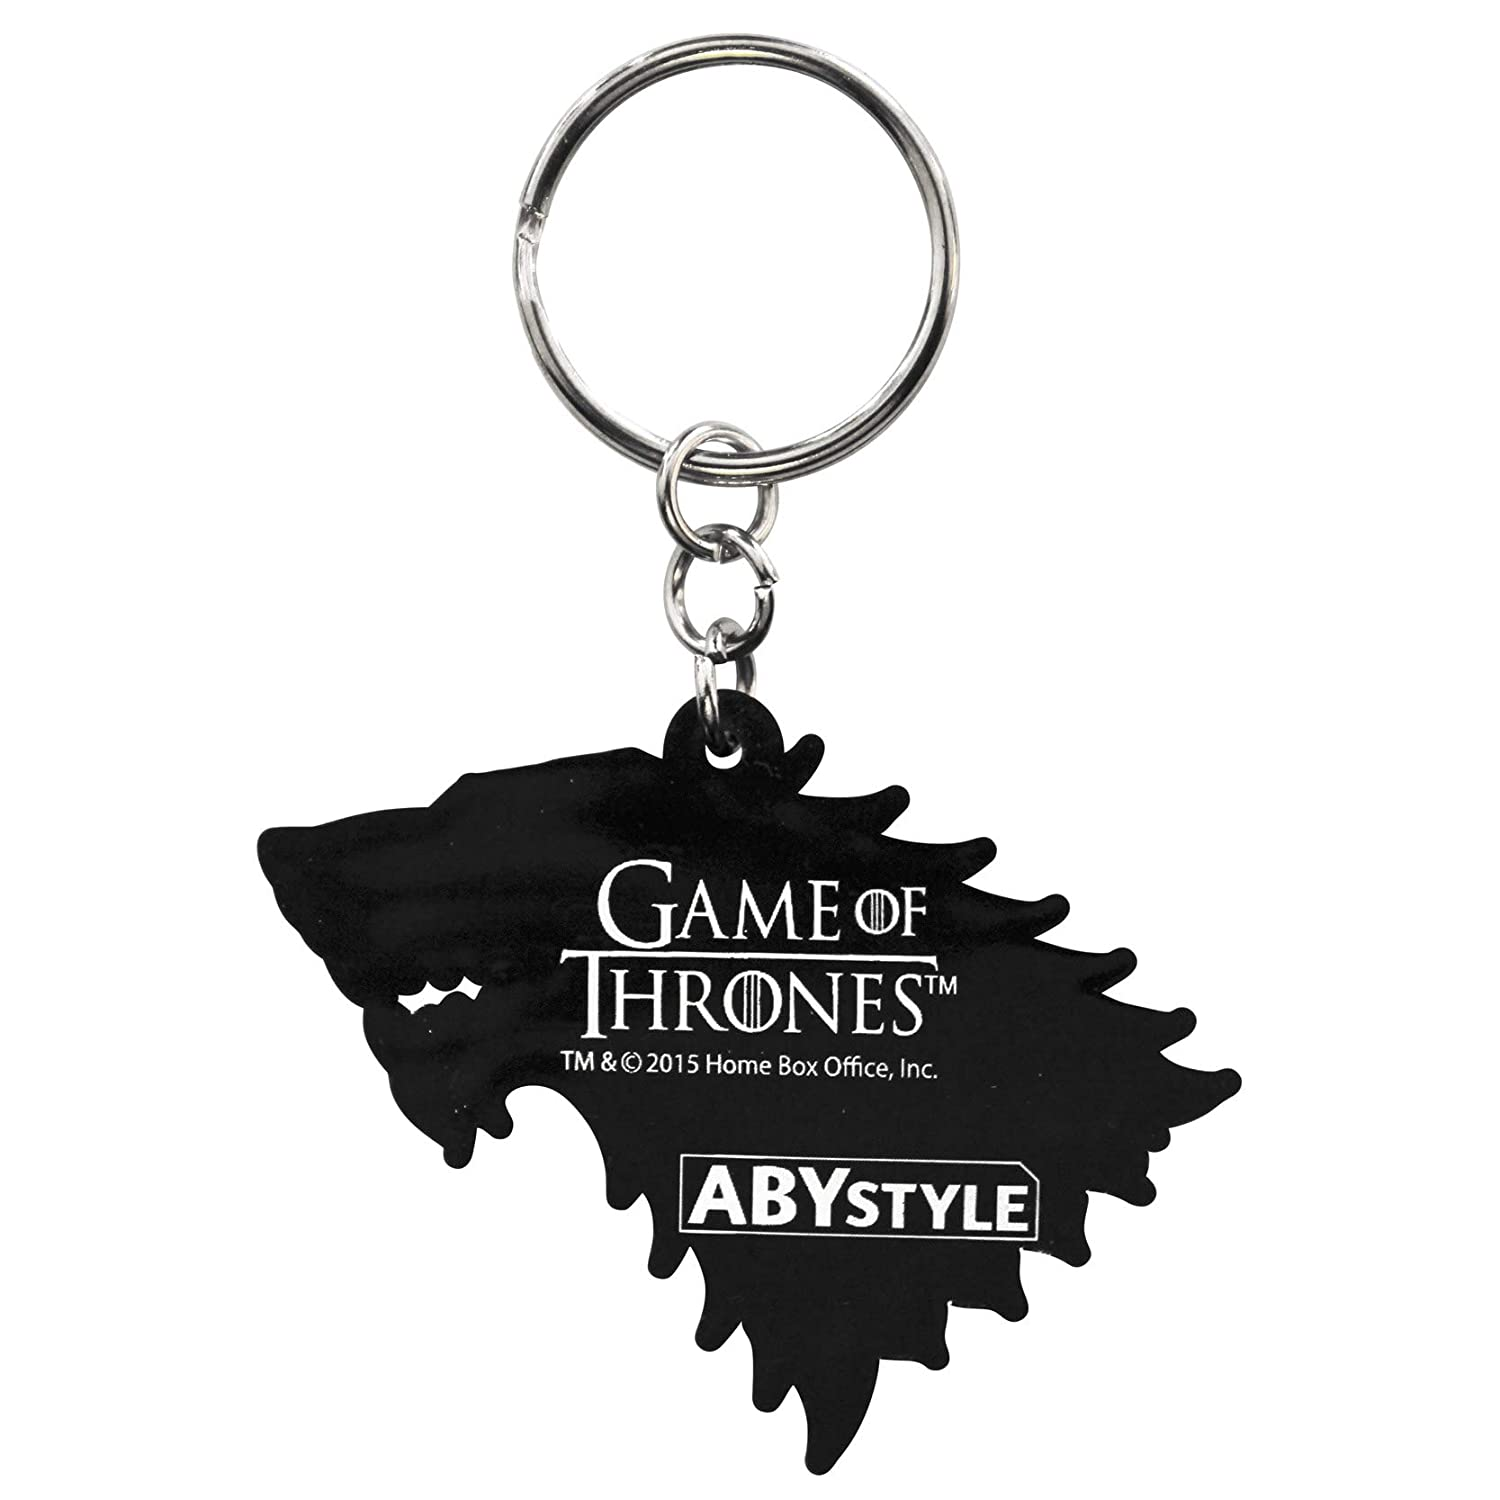 ABYstyle - GAME OF THRONES - Llavero PVC - Stark: Amazon.es ...